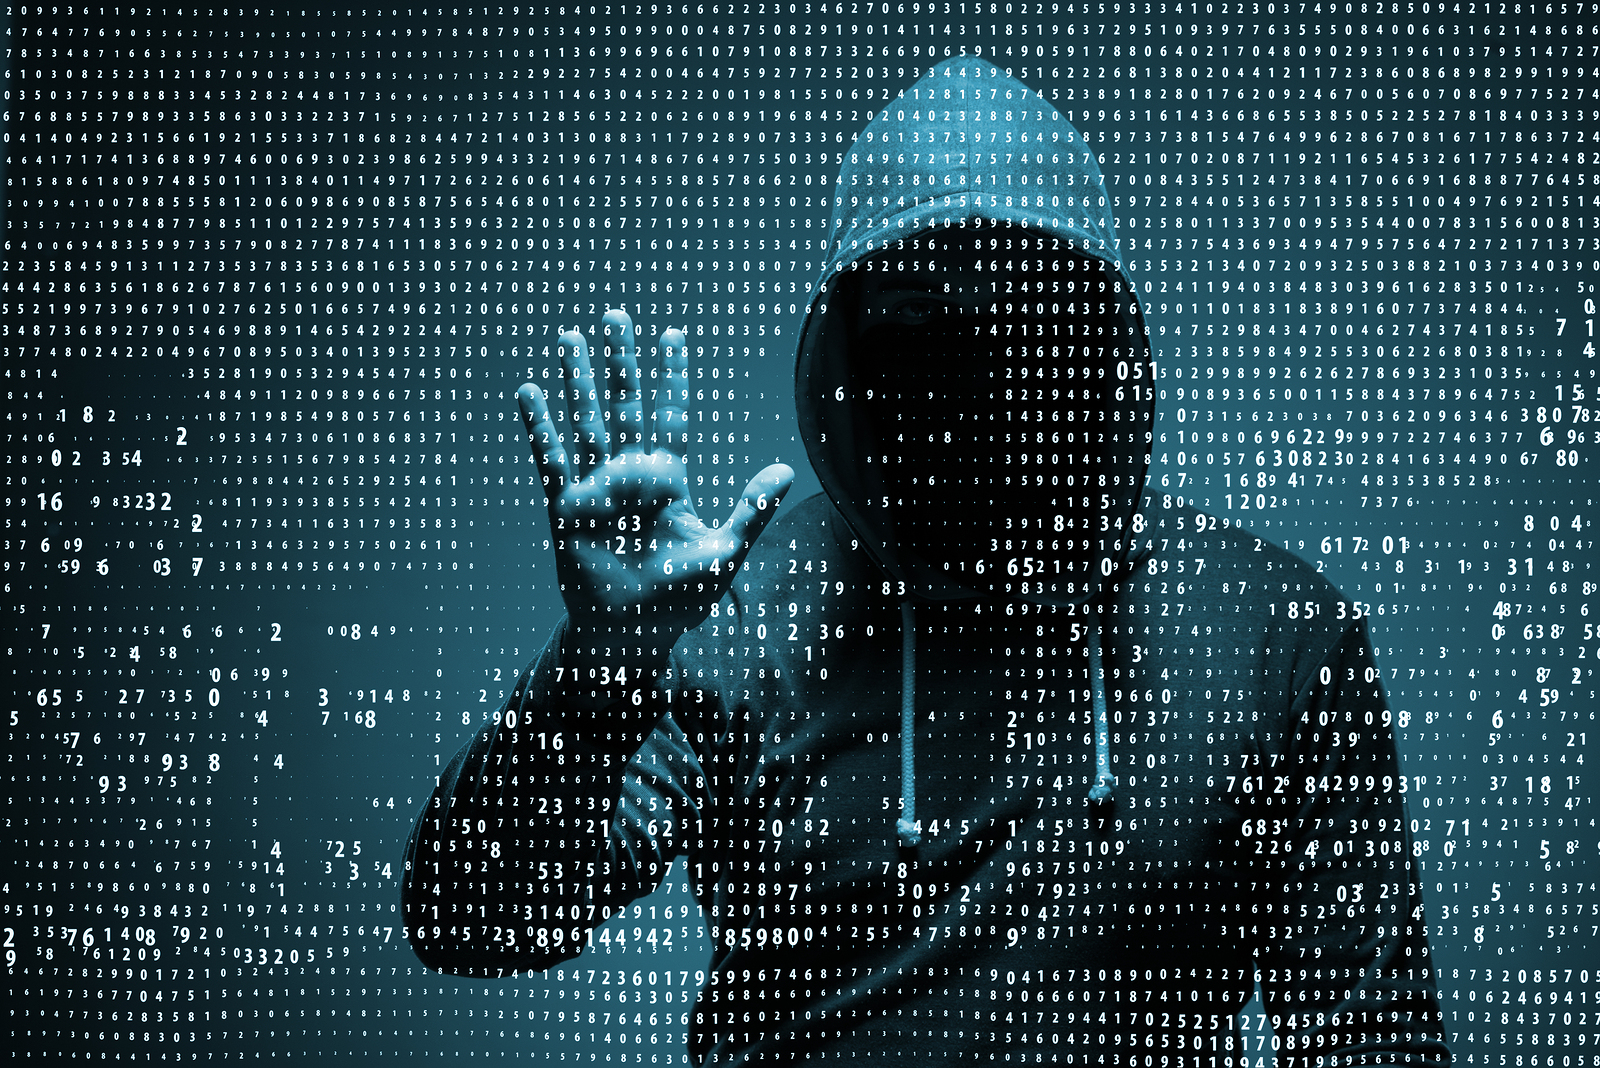 Image for Demand For Cyber Security Staff To Surge In 2018